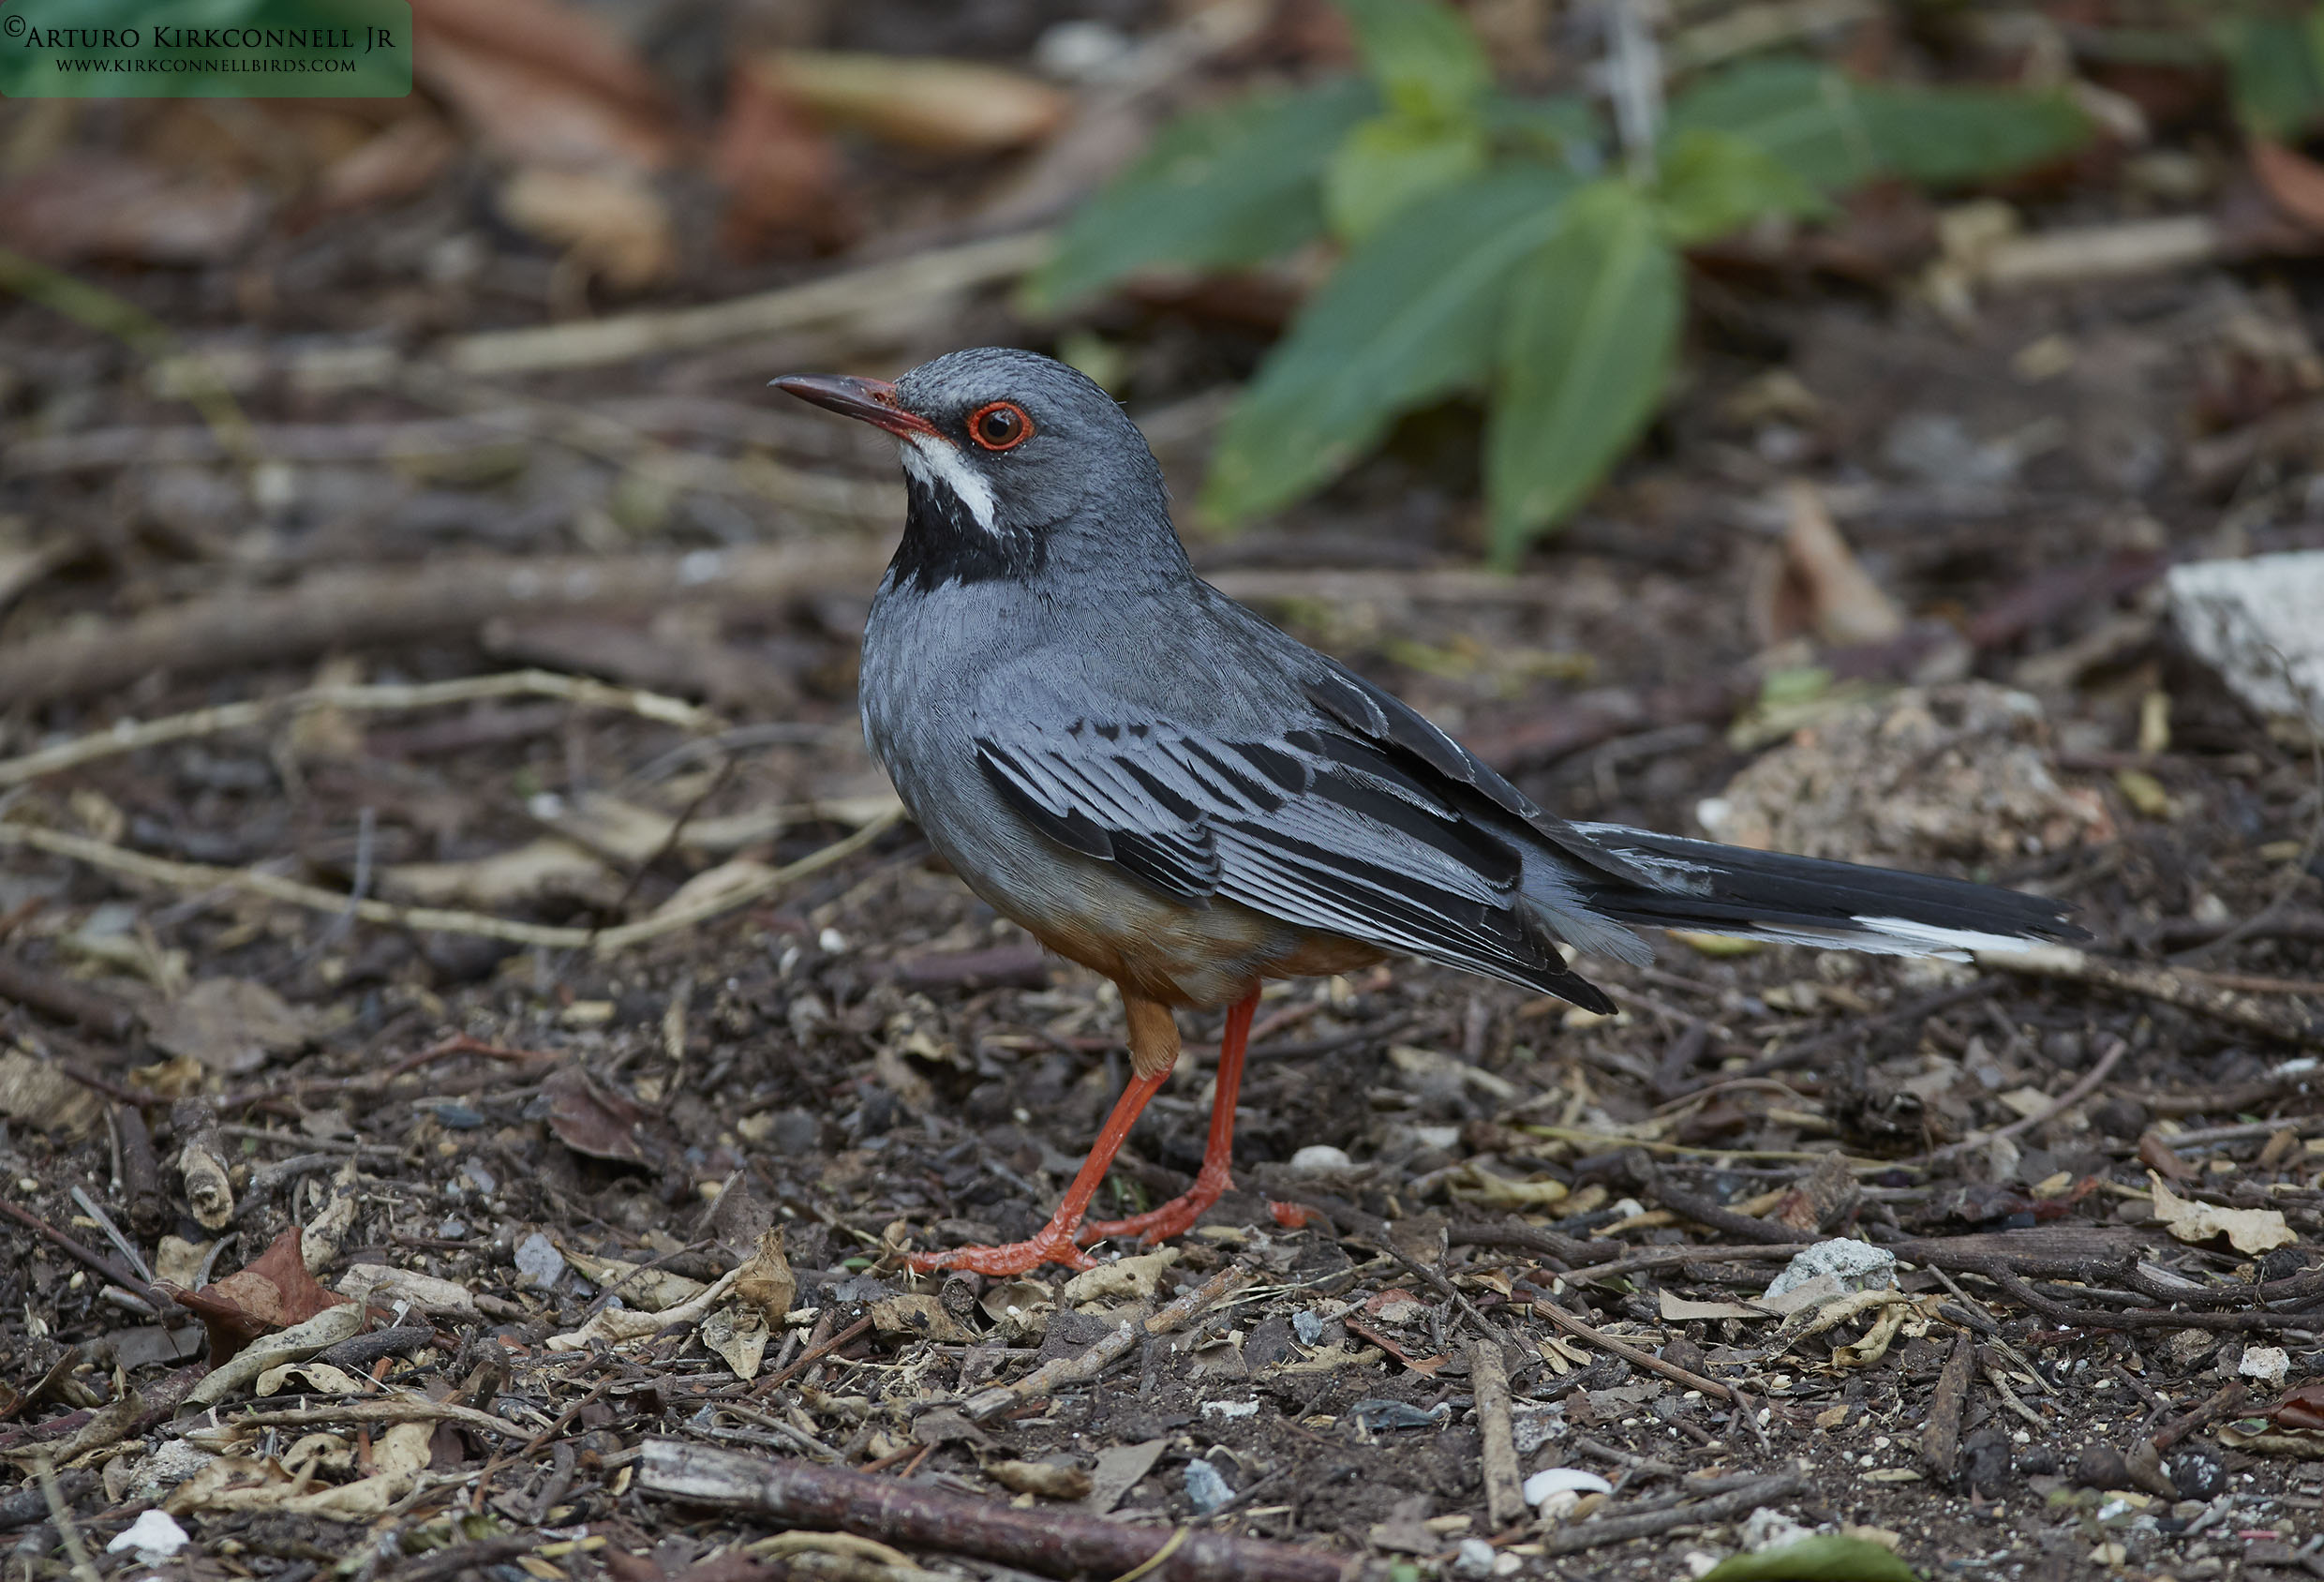 Red-leggued Thrush - Birding in Cuba